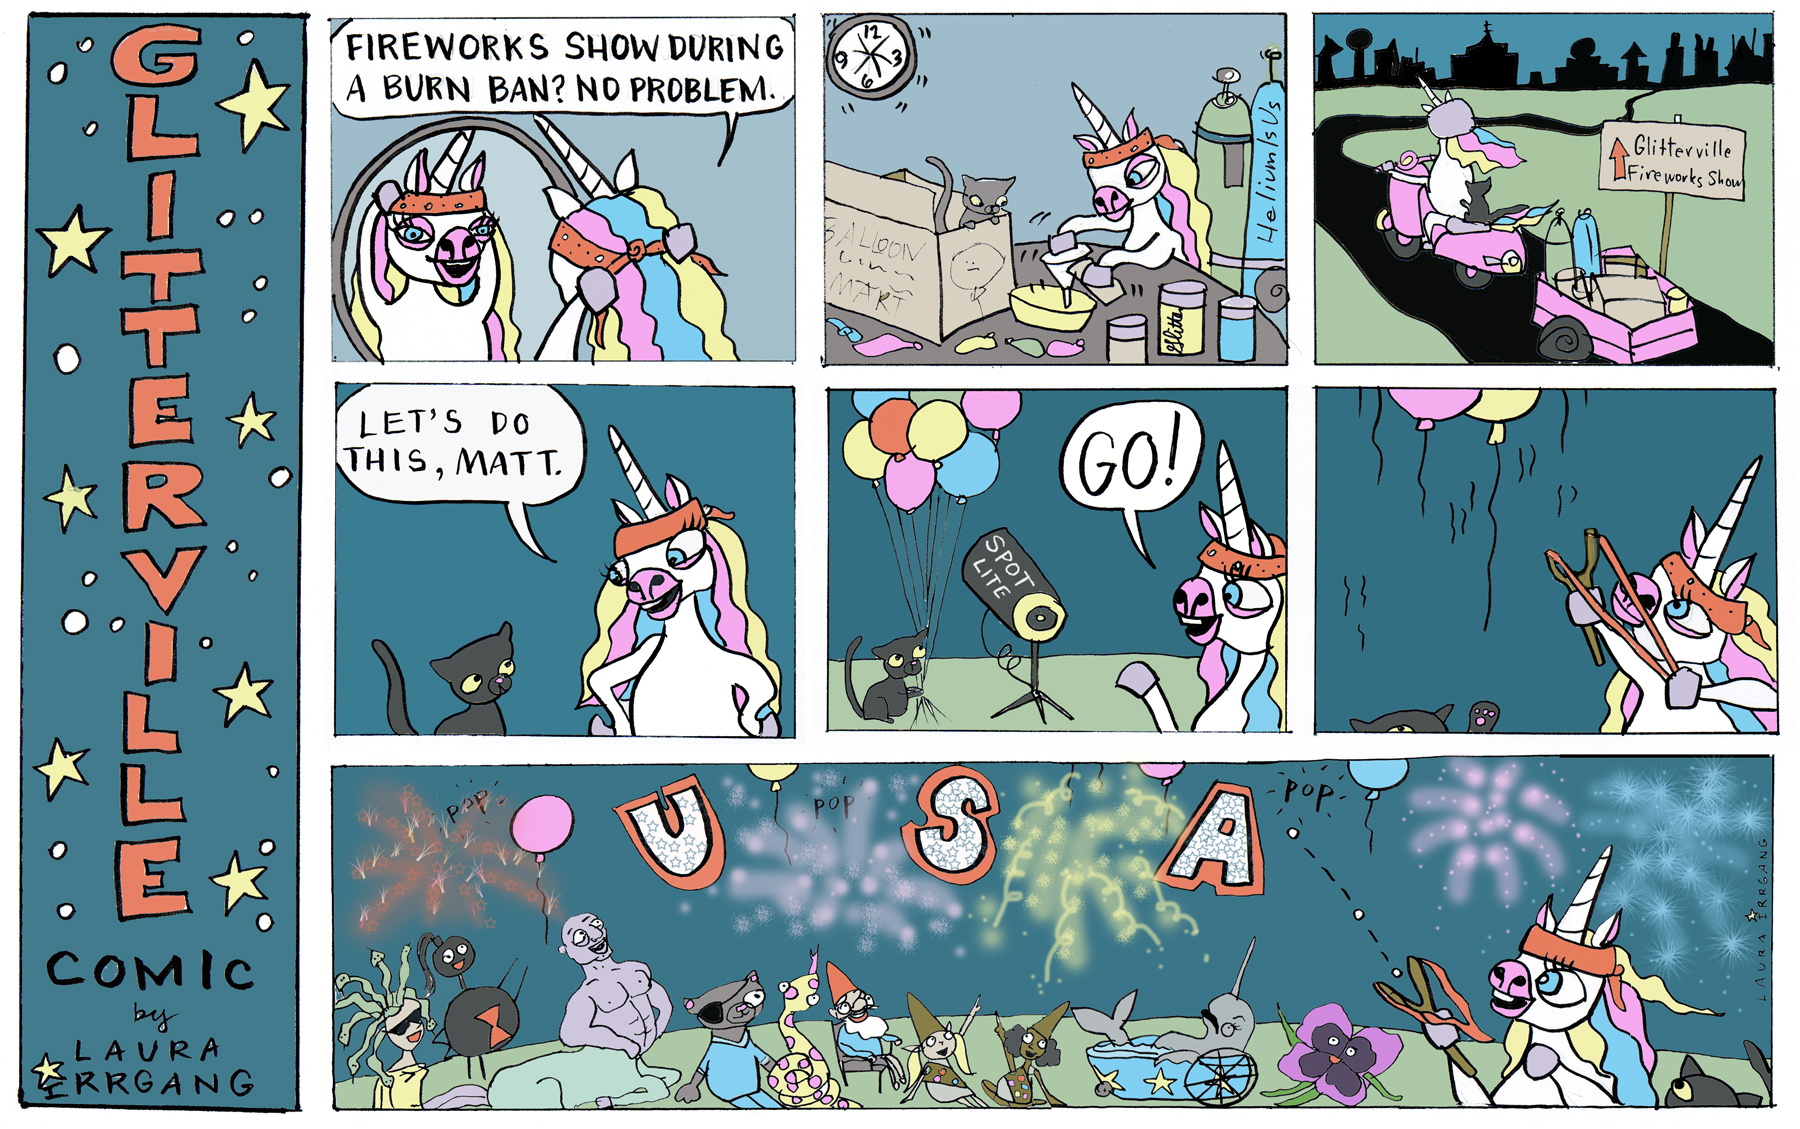 Glitterville Comic-July 4, 2018 rectangle.jpg